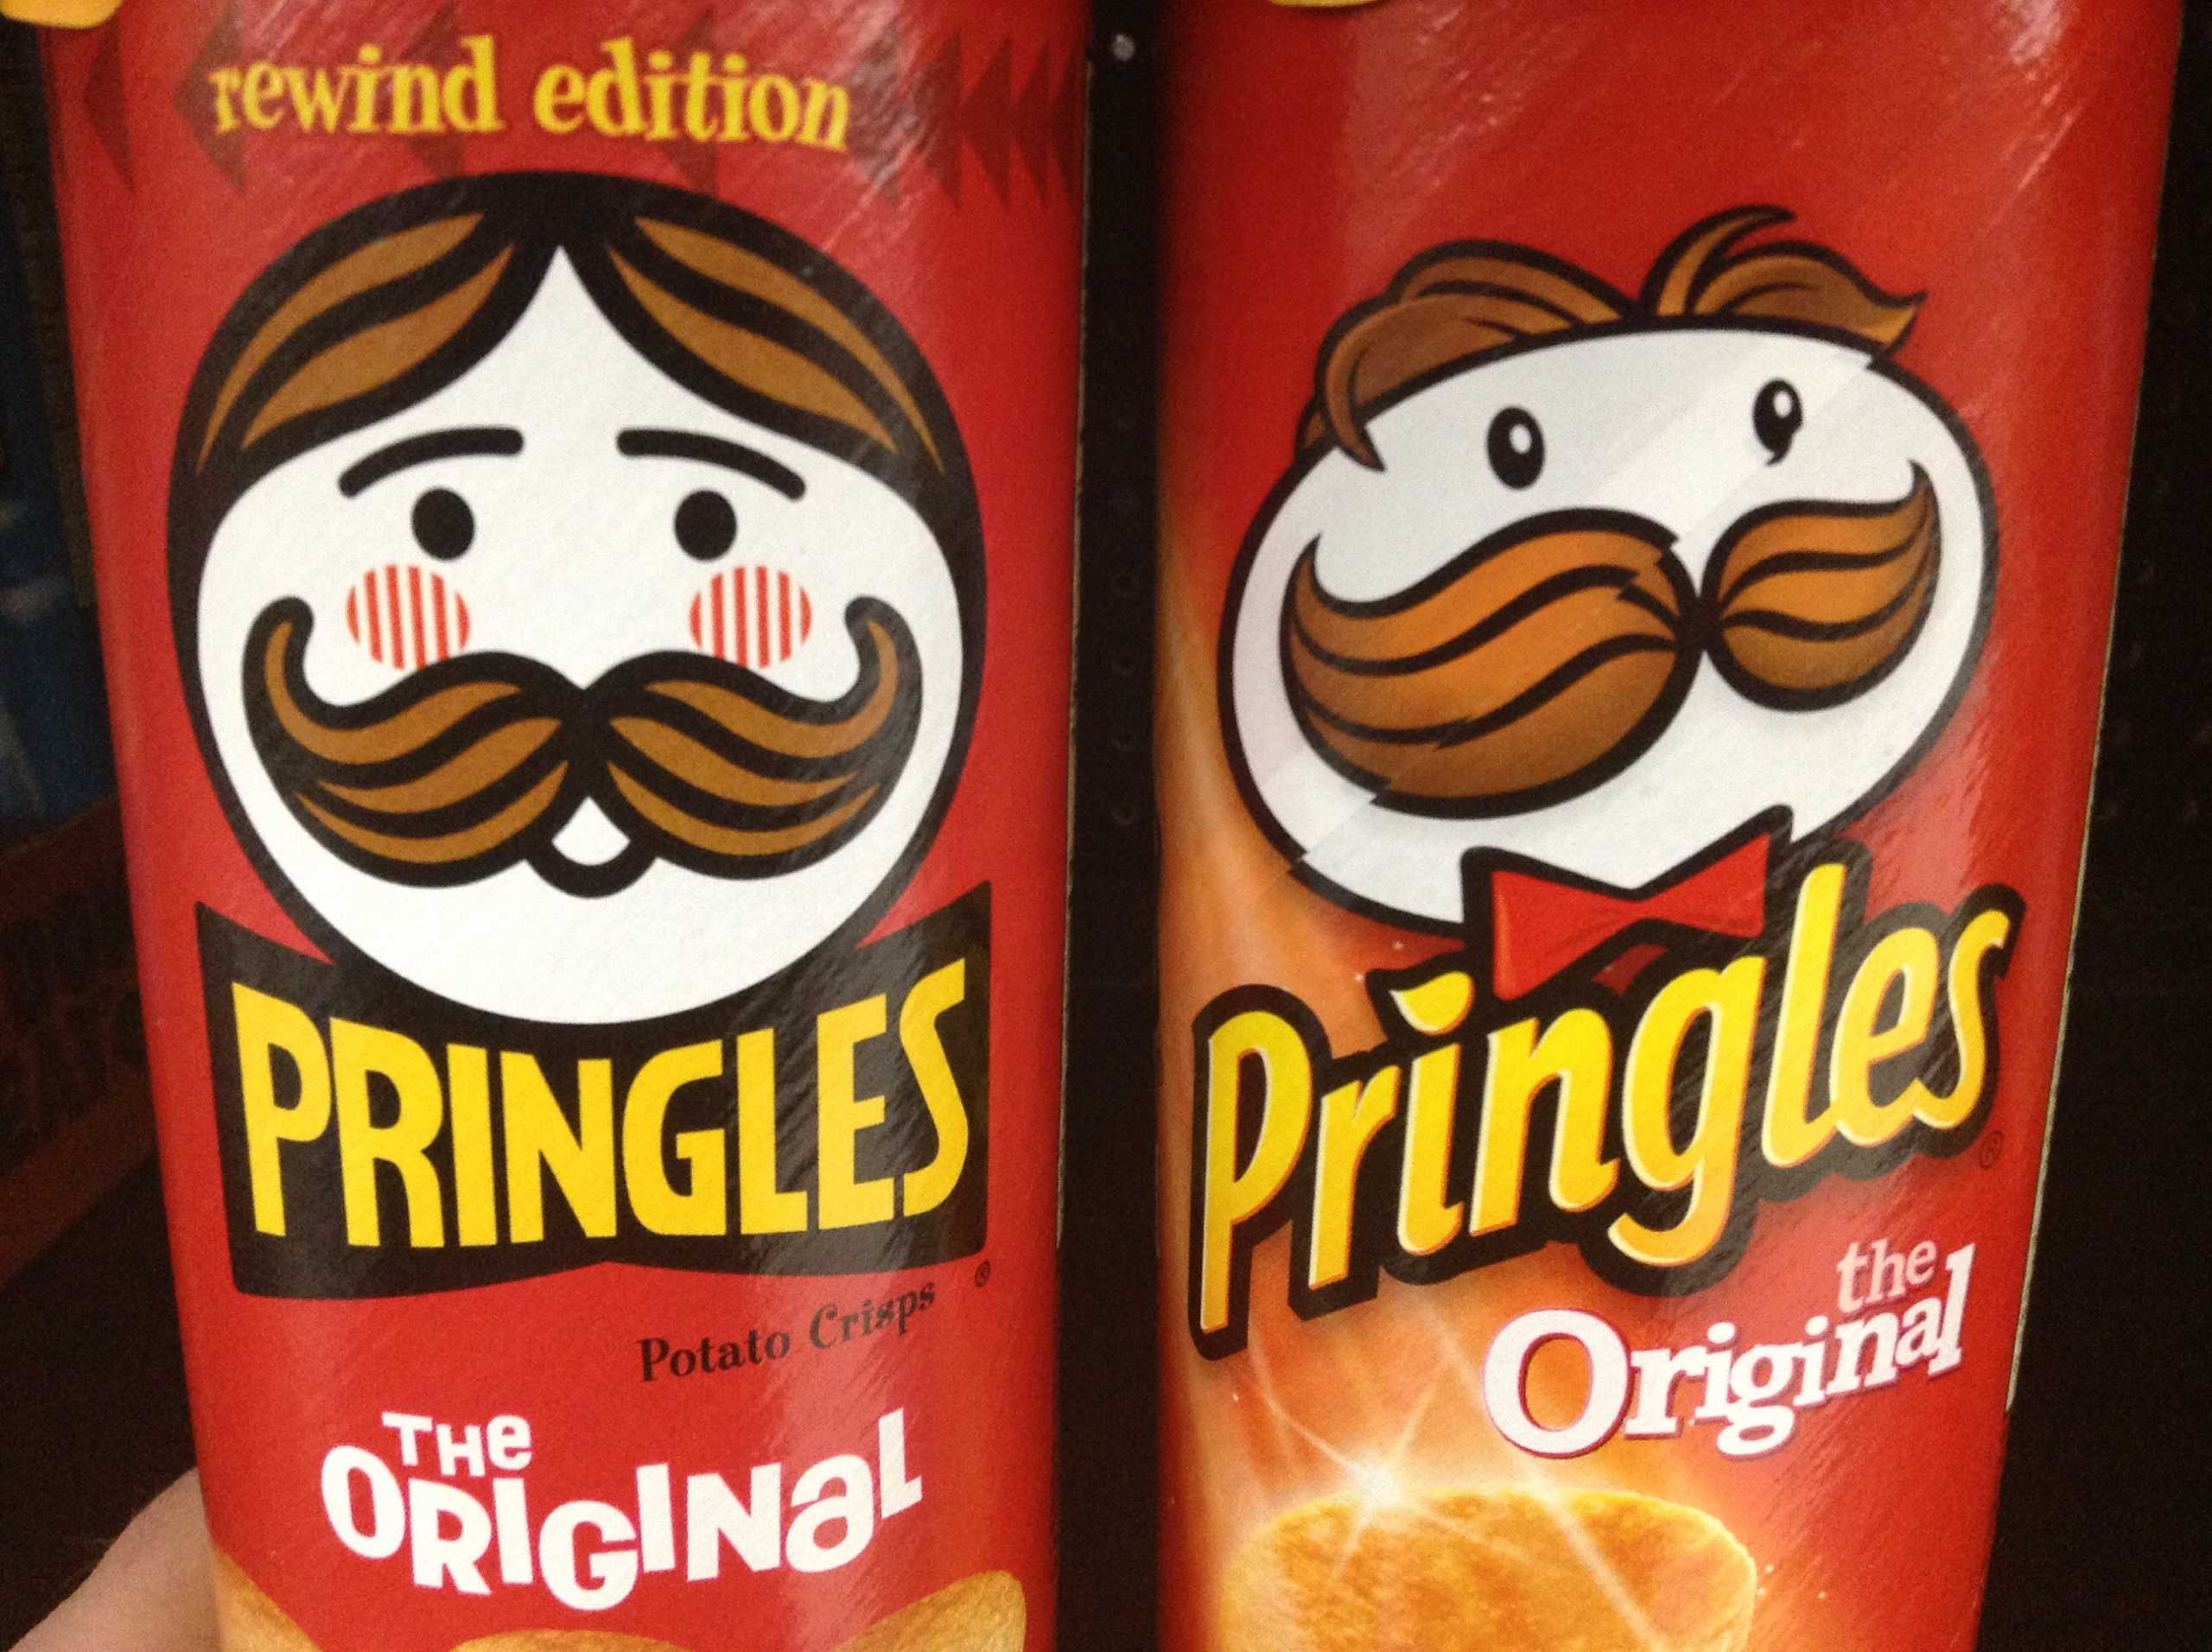 Pringles Cans